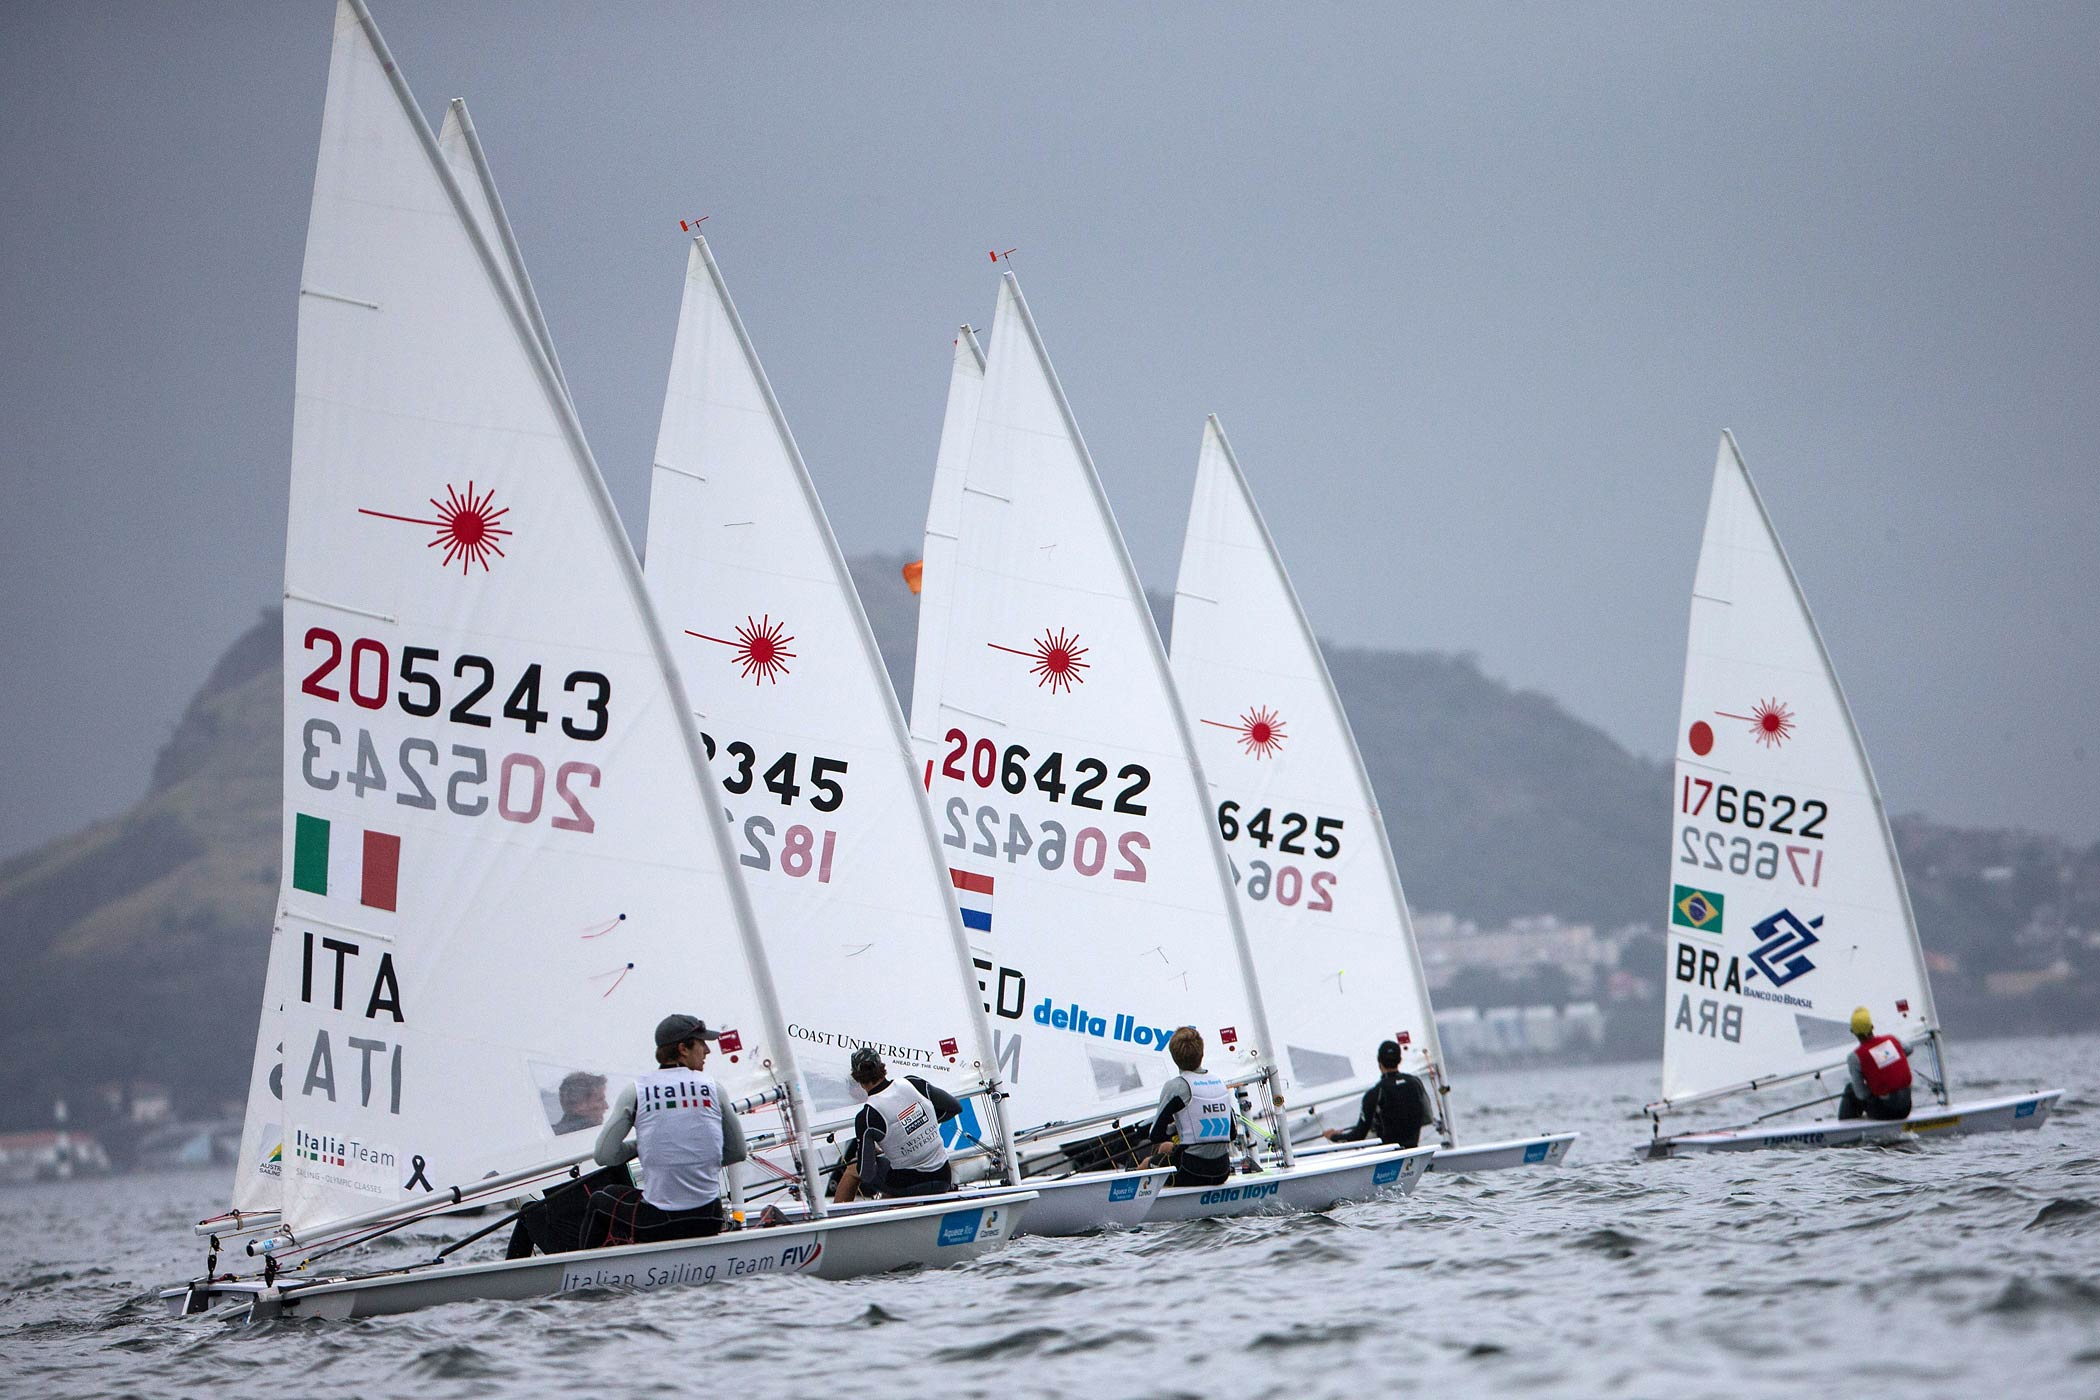 Athletes compete in the Men's Laser during the final day of Aquece Rio, the International Sailing Regatta 2014, the first test event for the Rio 2016 Olympic and Paralympic Games at Guanabara bay in Rio de Janeiro, Brazil, on August 9, 2014.